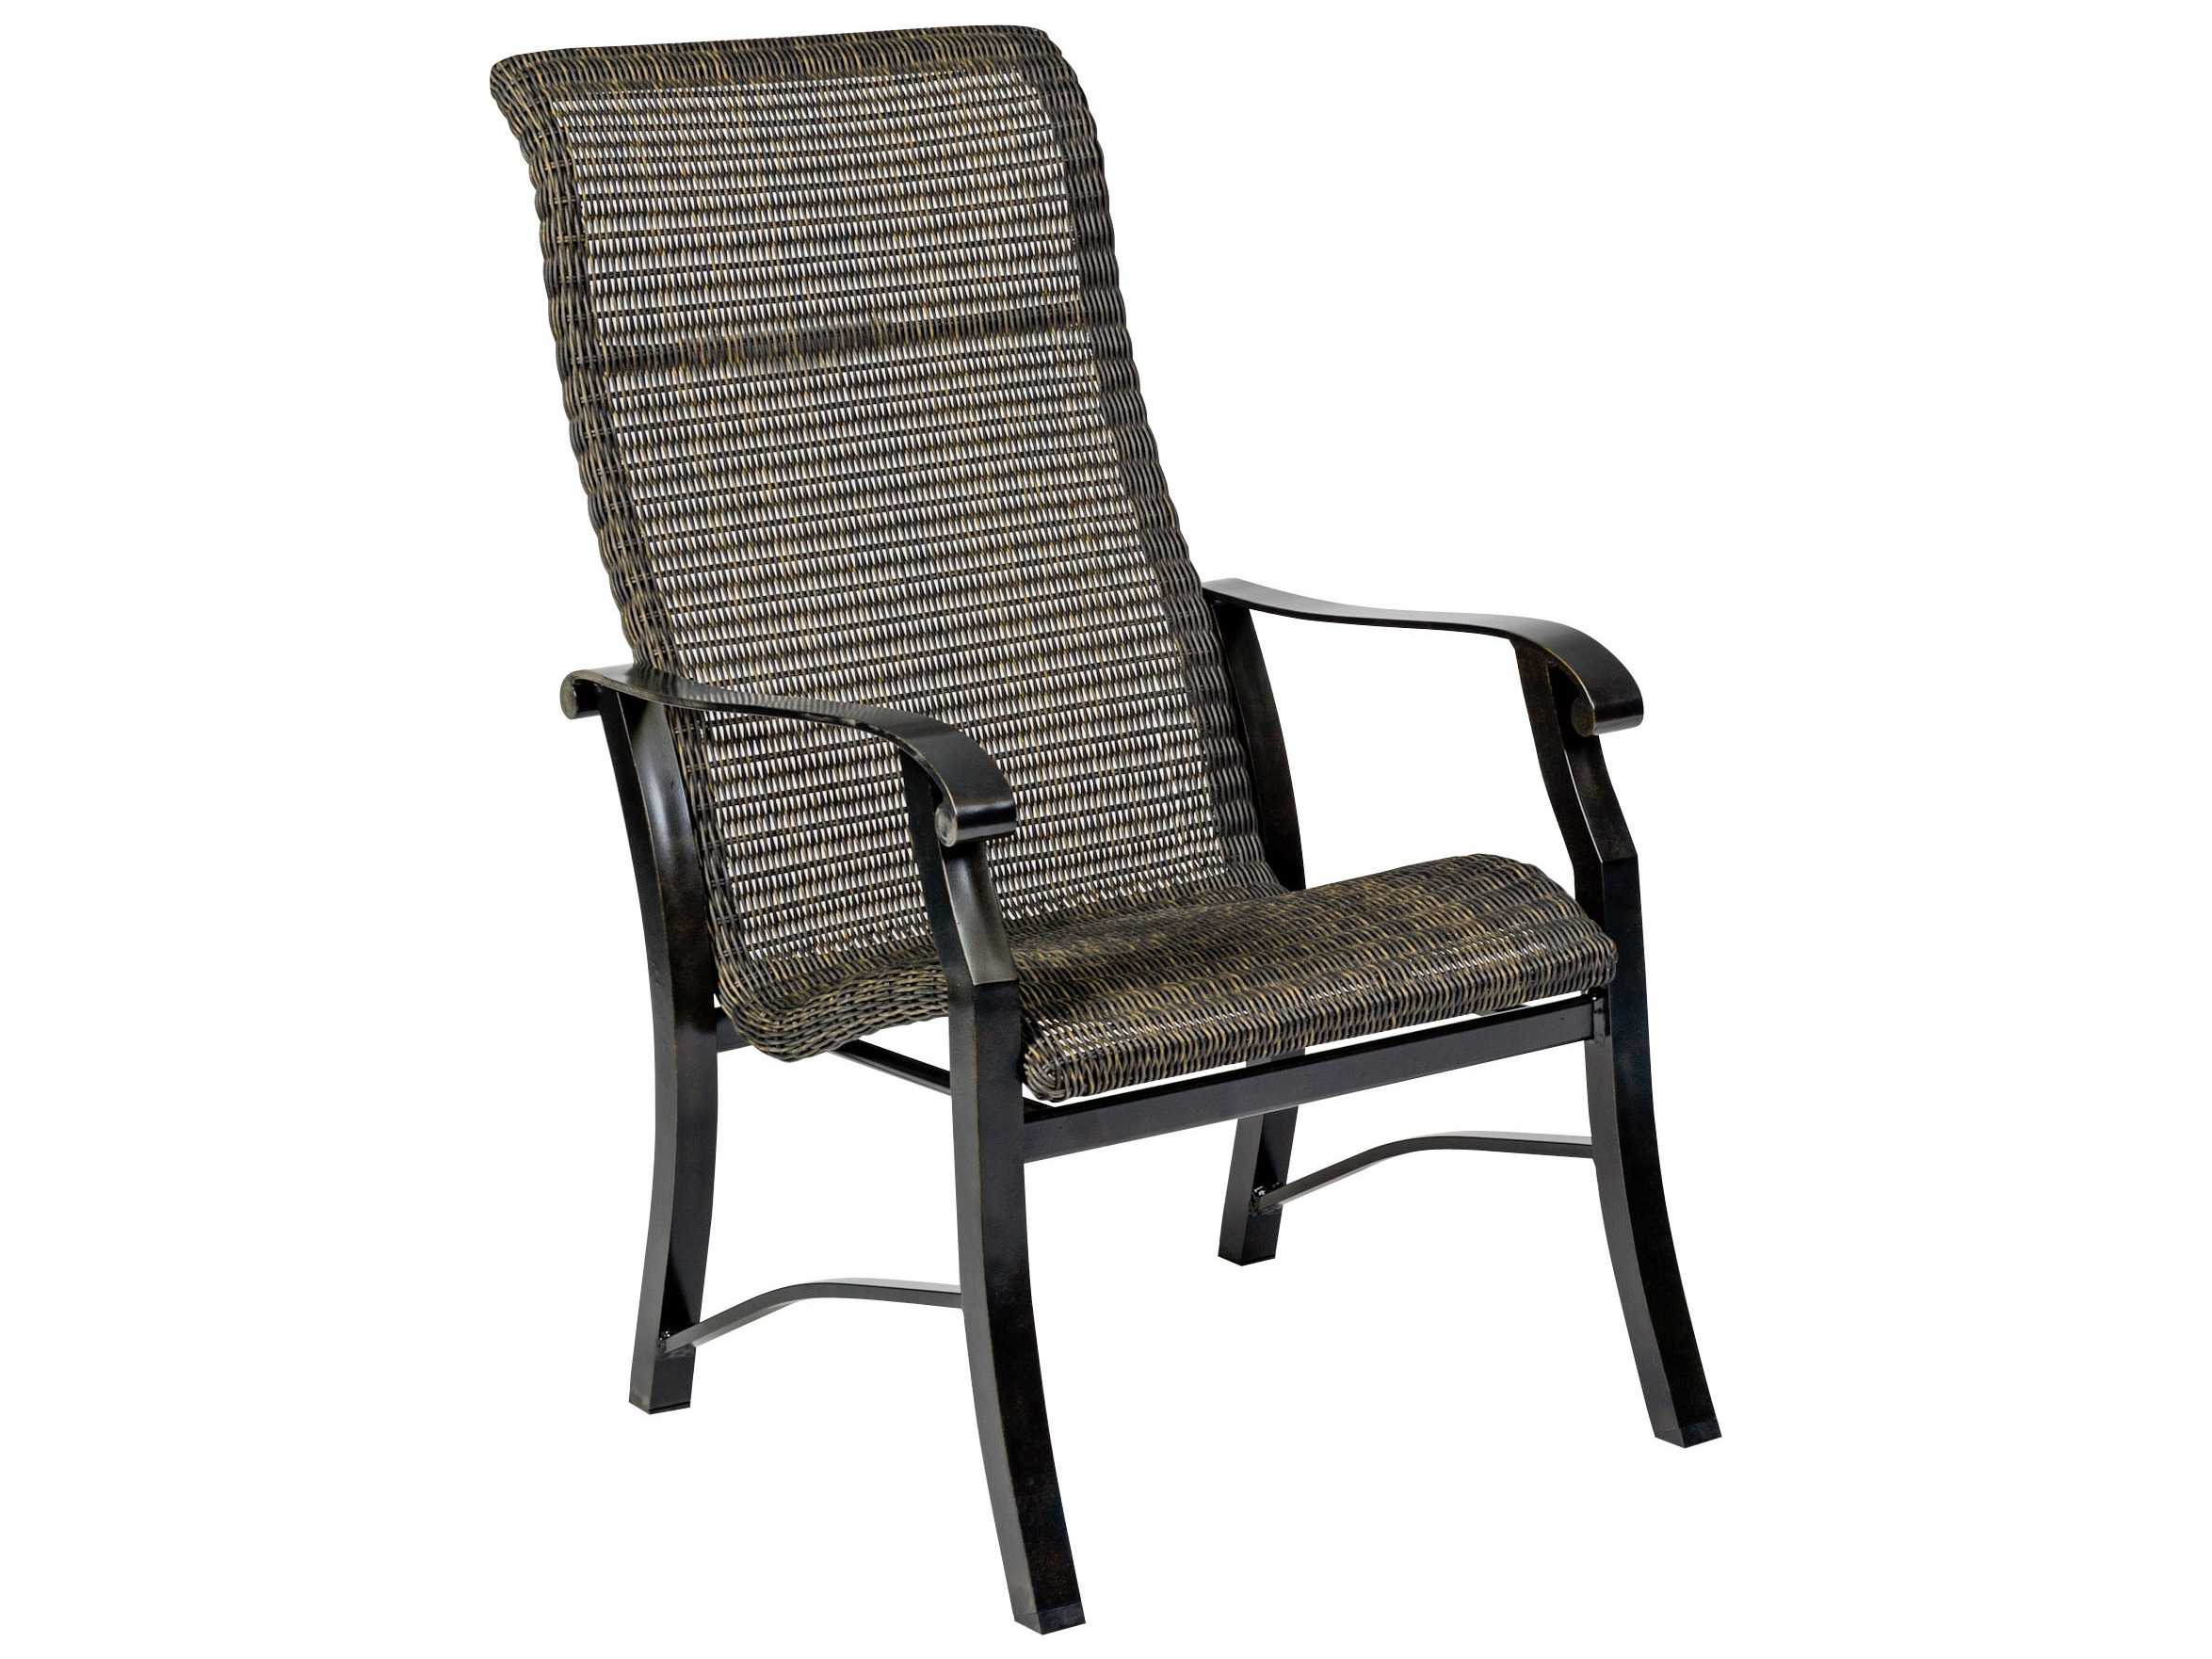 cortland woven round weave wicker high back dining chair 5v0426